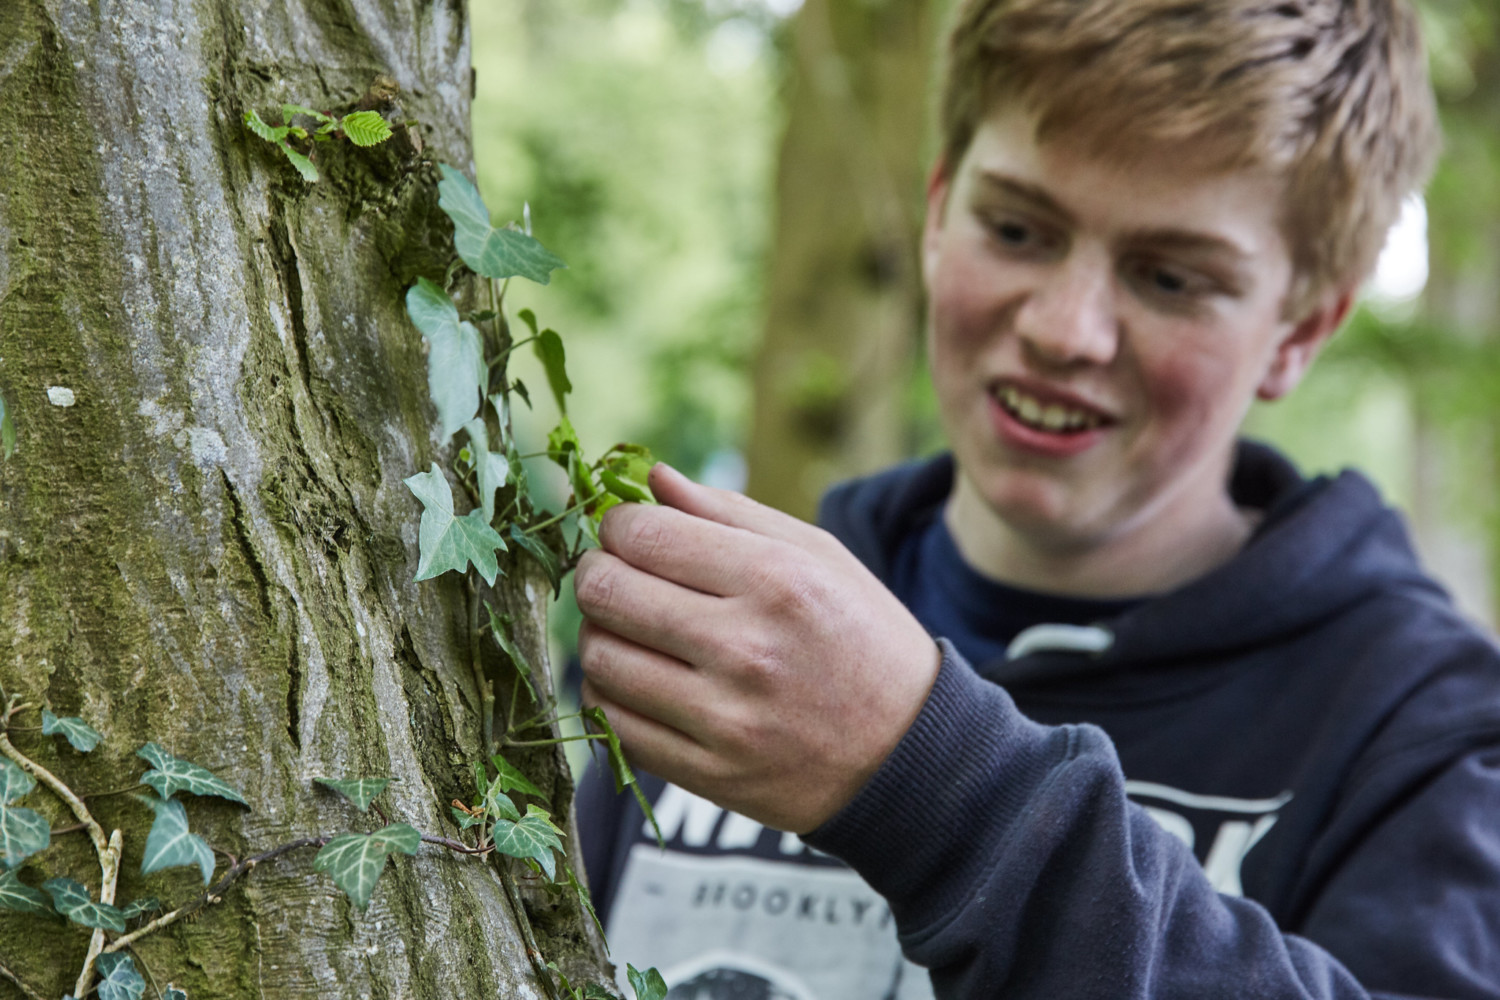 male student outdoors examining the tree